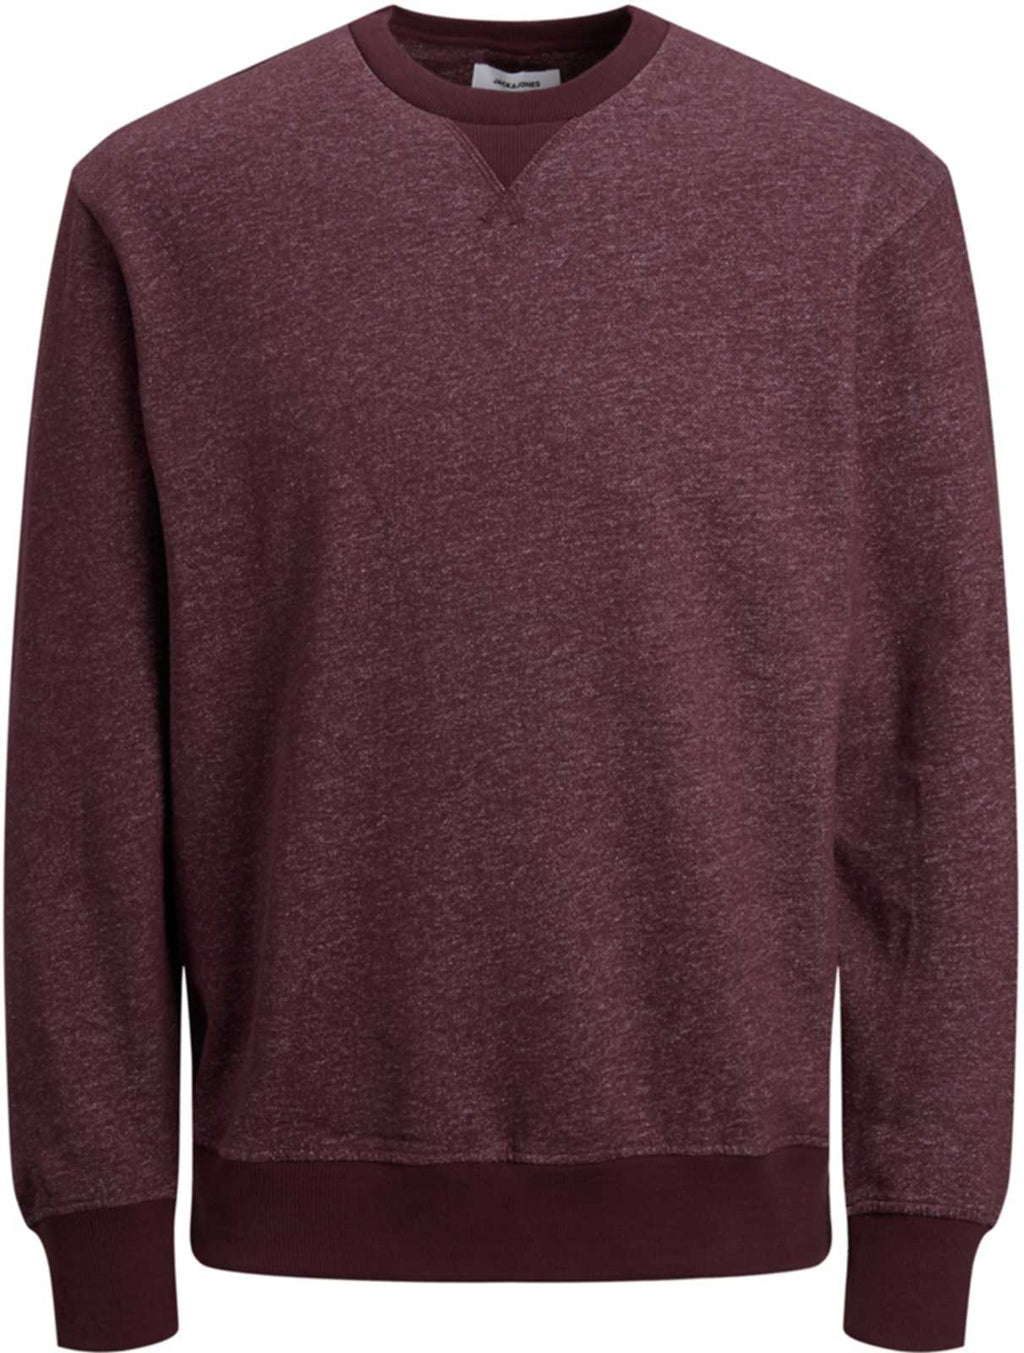 Jack & Jones Melange Crew Neck Sweatshirt Burgundy